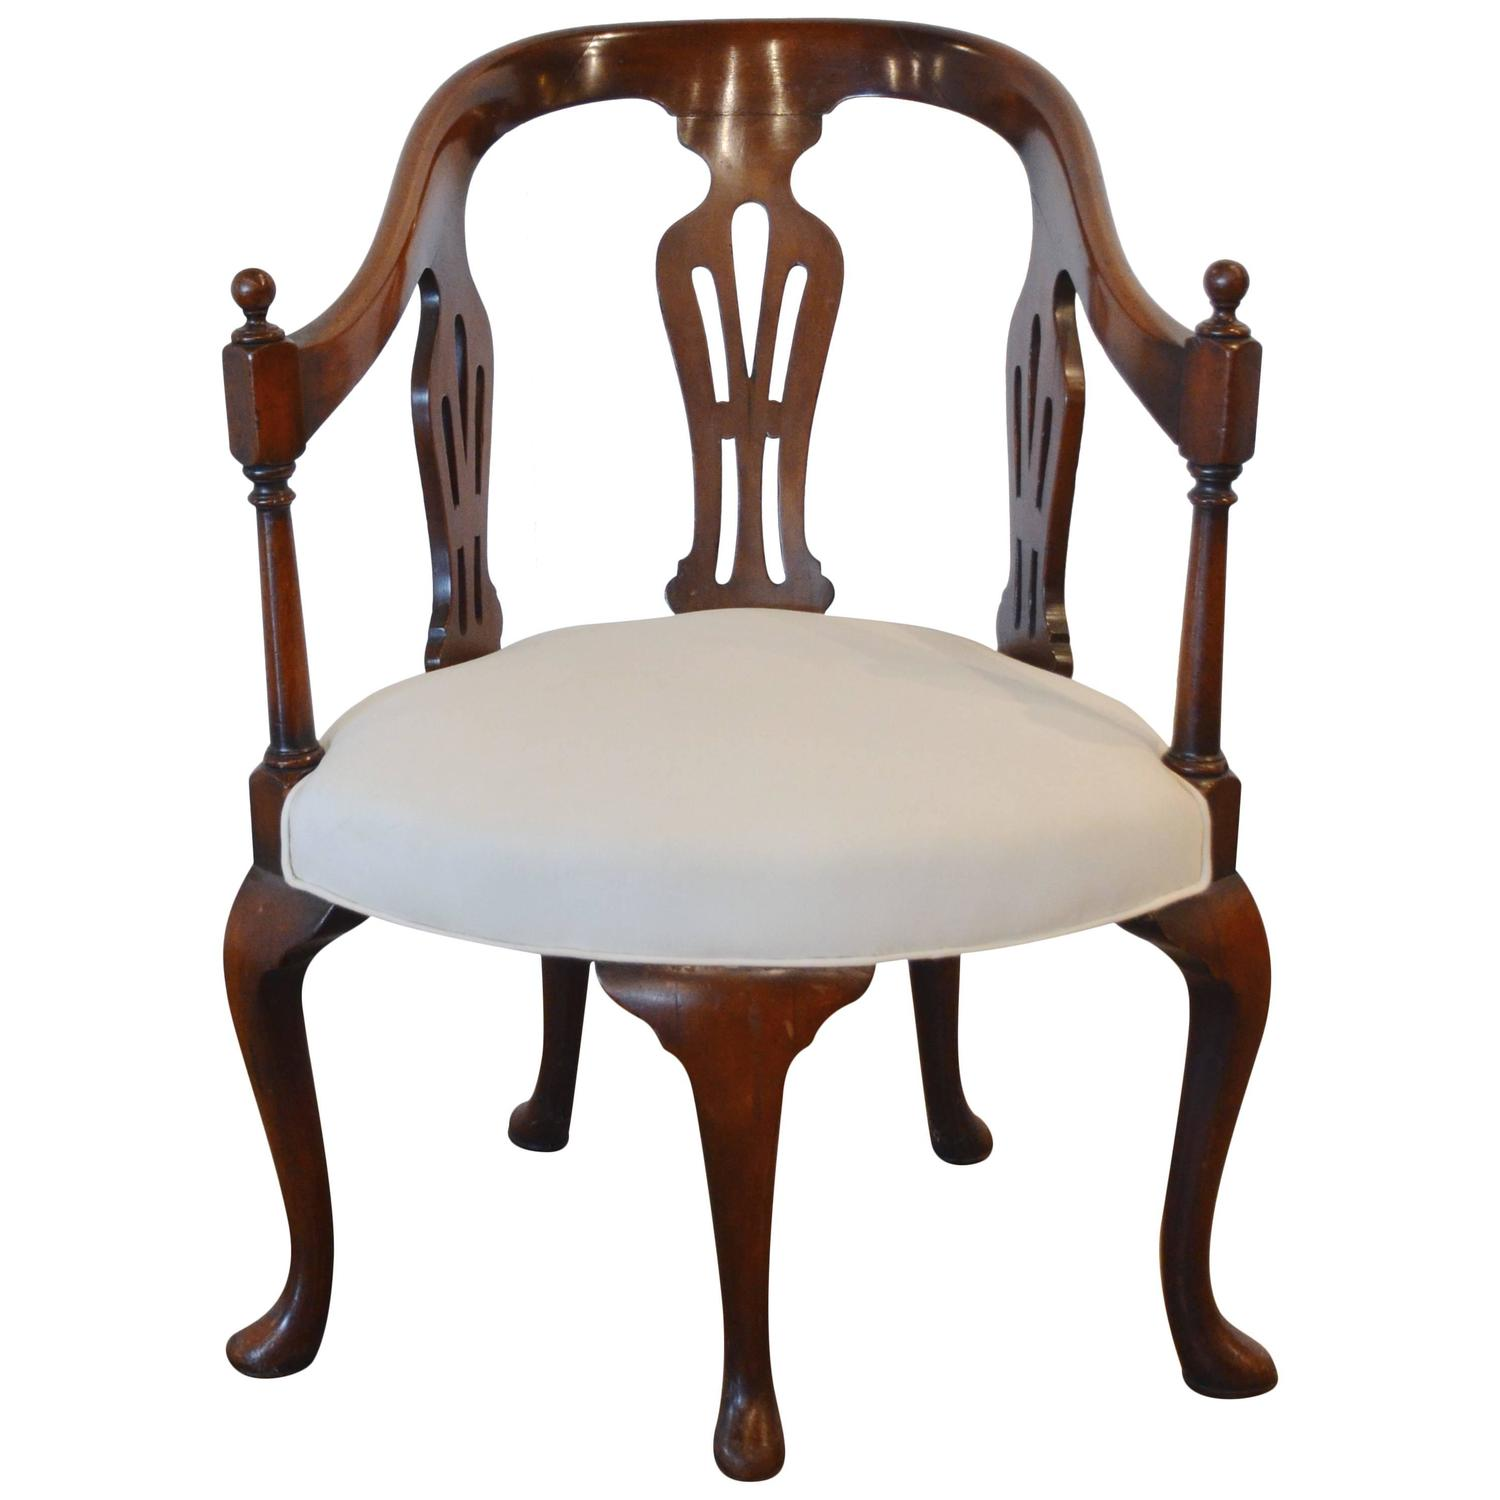 - Queen Anne Five-Legged Chair, 18th Century For Sale At 1stdibs